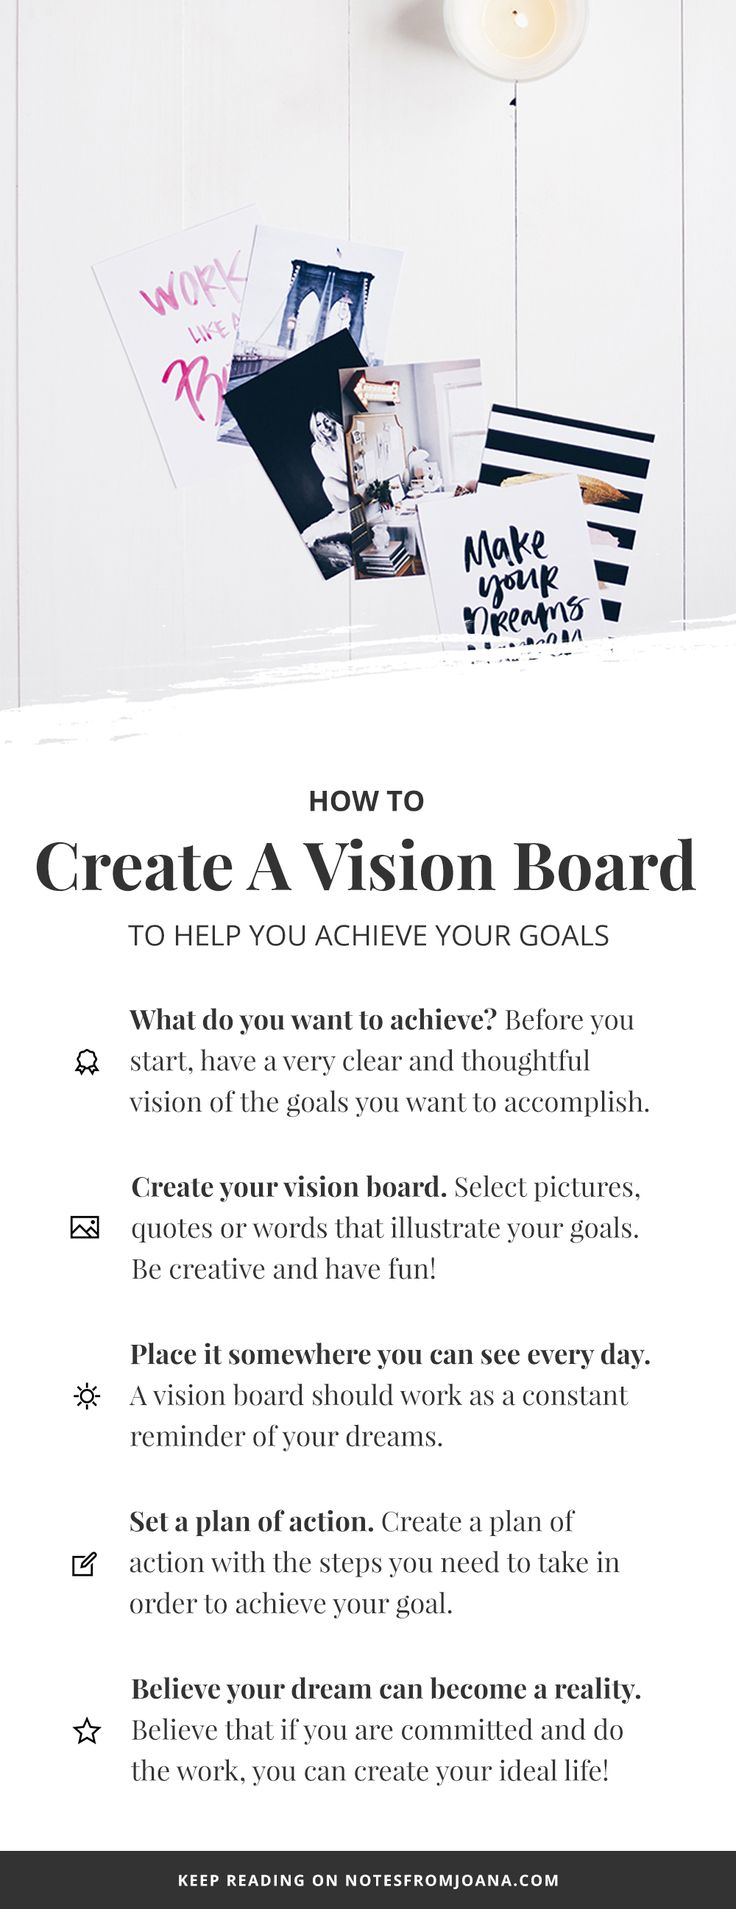 How To Create A Vision Board To Help You Achieve Your Goals. Goal Setting. // Notes from Joana